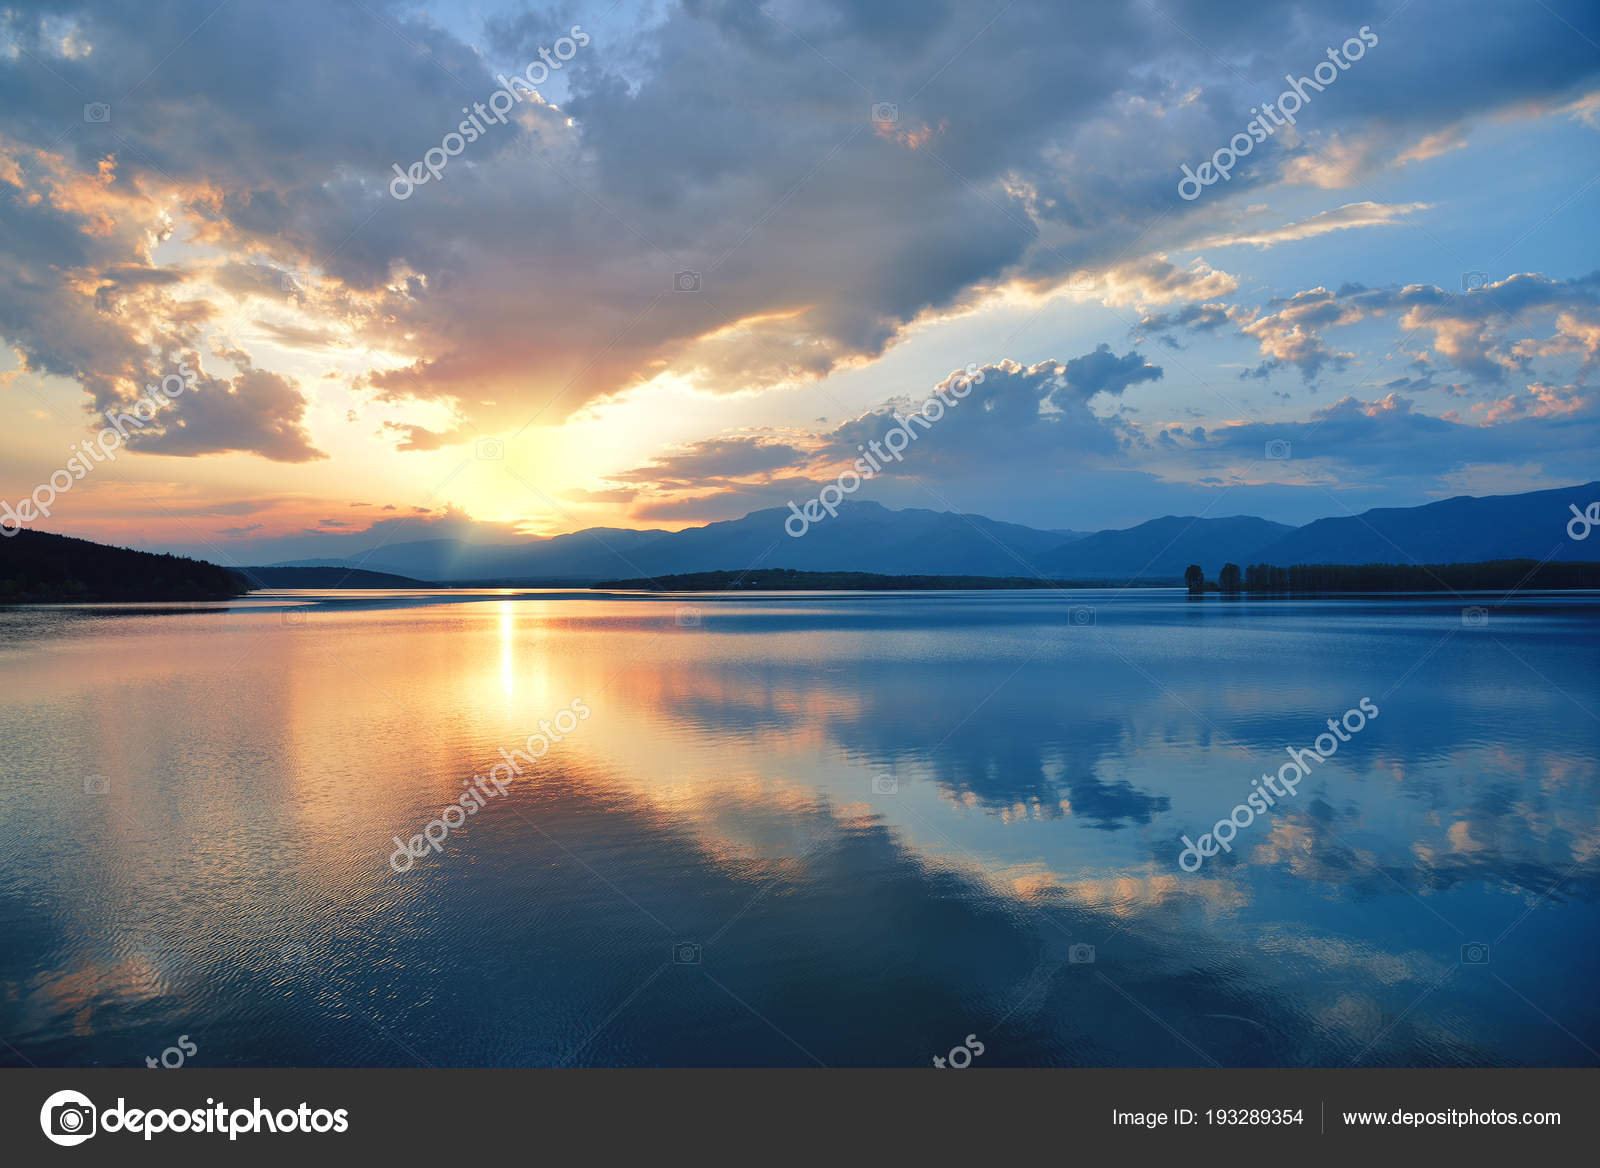 Sunset Or Sunrise Landscape Panorama Of Beautiful Nature Sky With Amazing Colorful Clouds Water ReflectionsMagic Artistic WallpaperDream Line